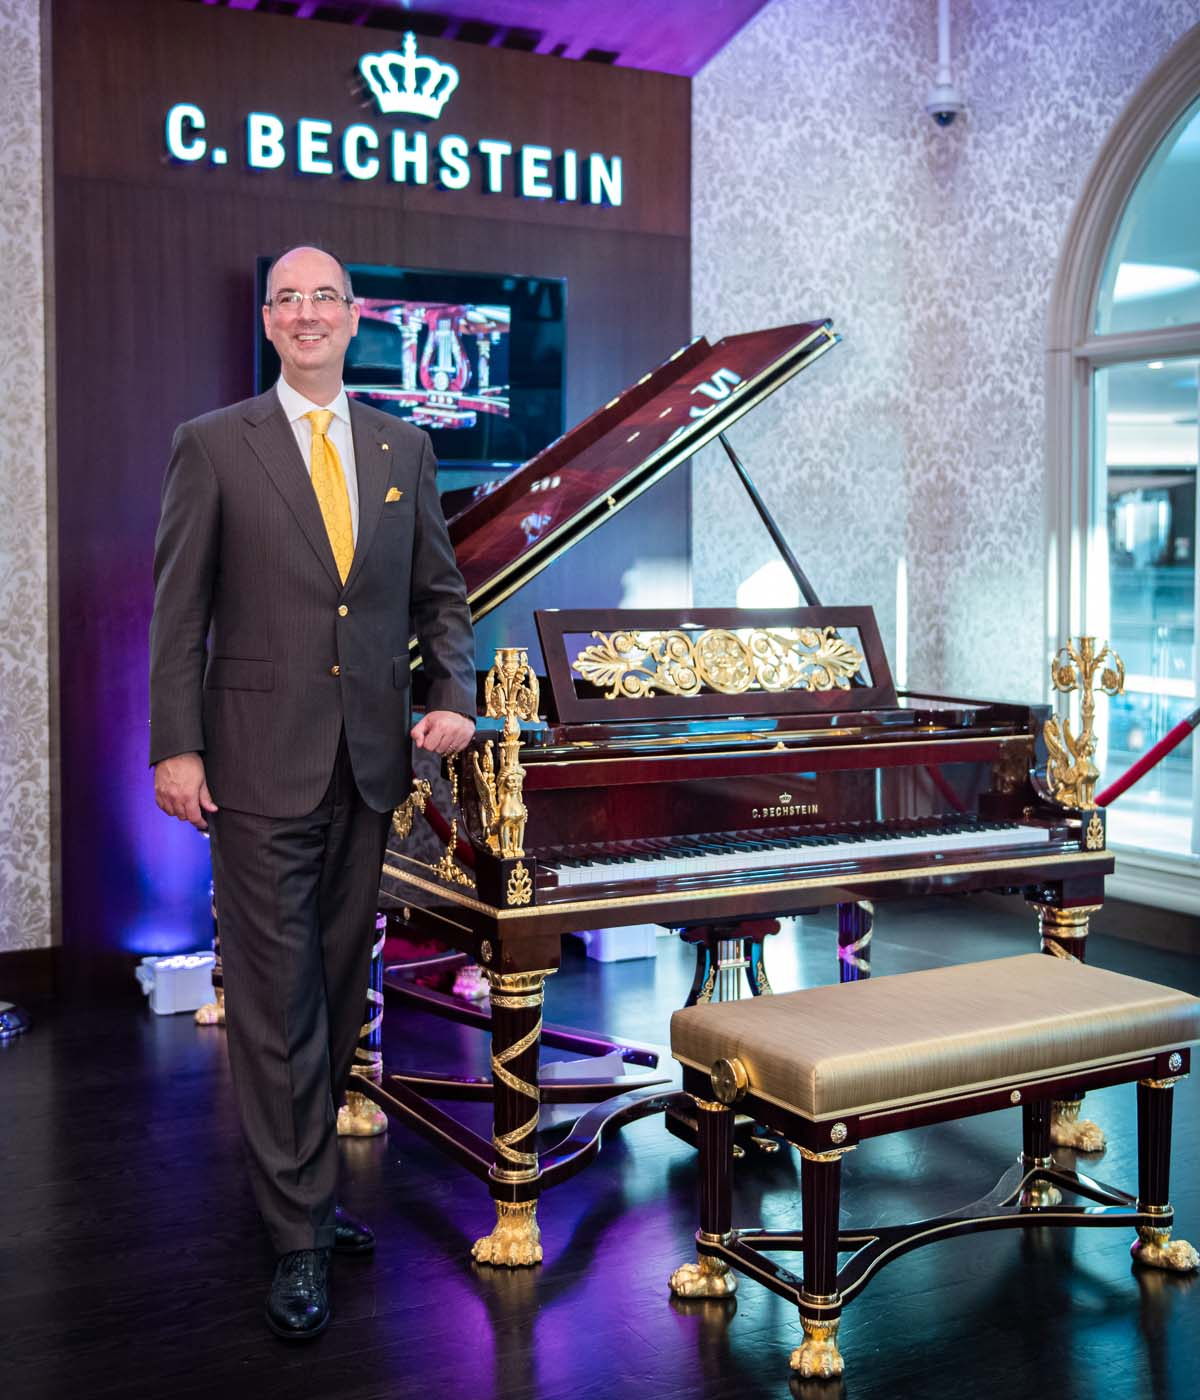 C Bechstein Sphinx Grand Piano